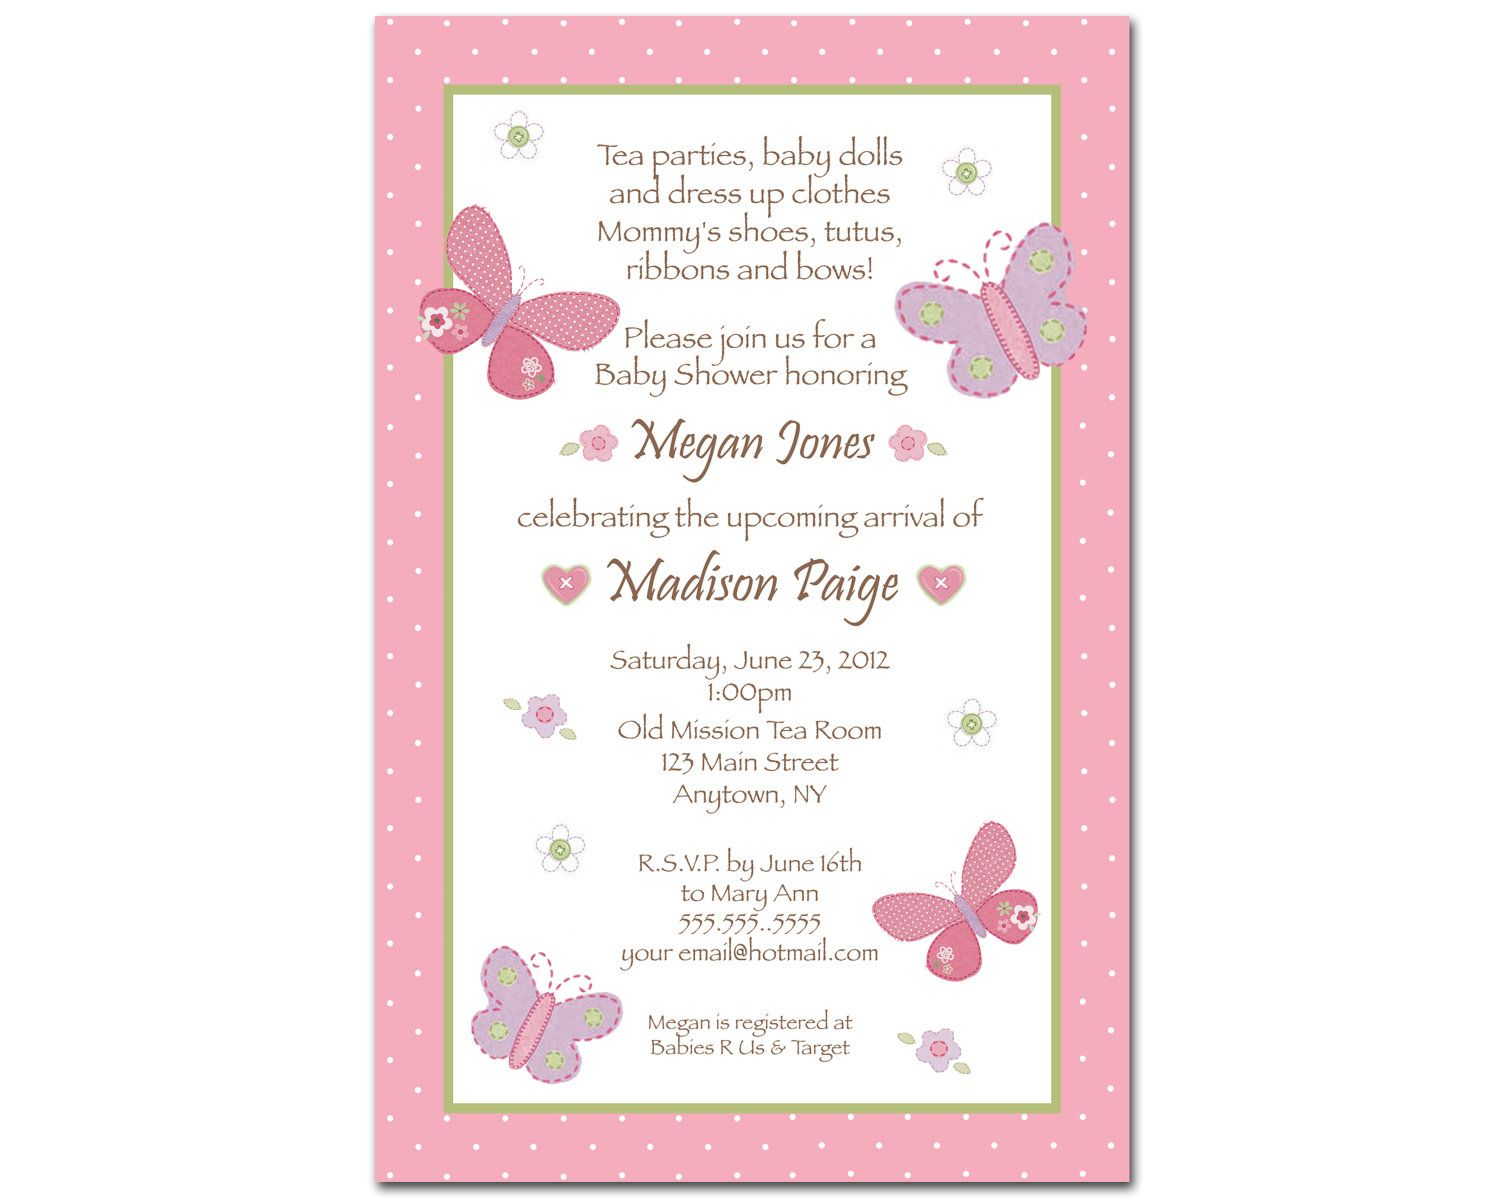 24 printed carter's baby girl baby shower invitations - butterfly, Baby shower invitations